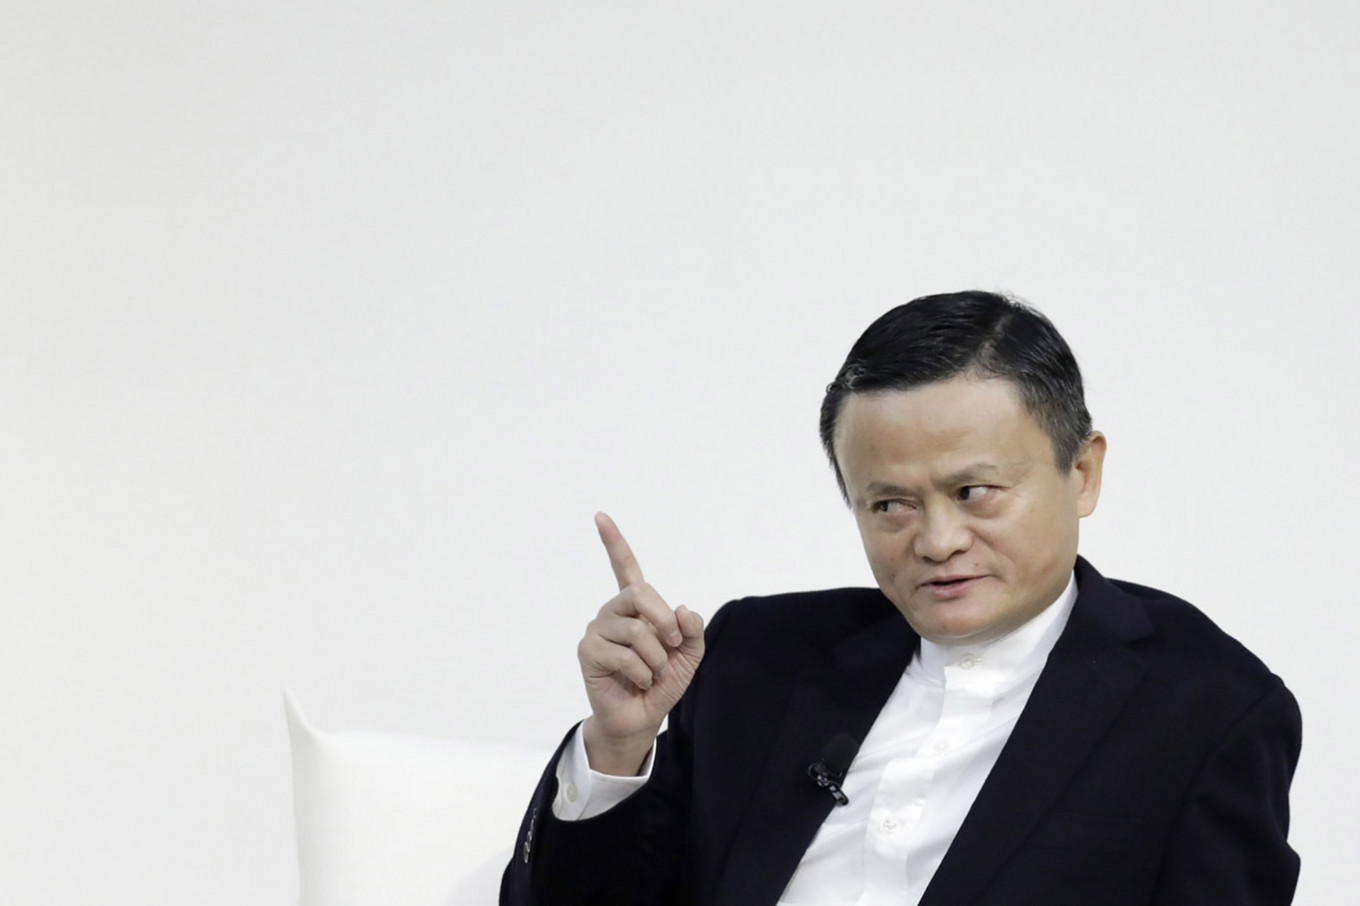 Jack Ma joins Twitter with first tweet on mask donation to US